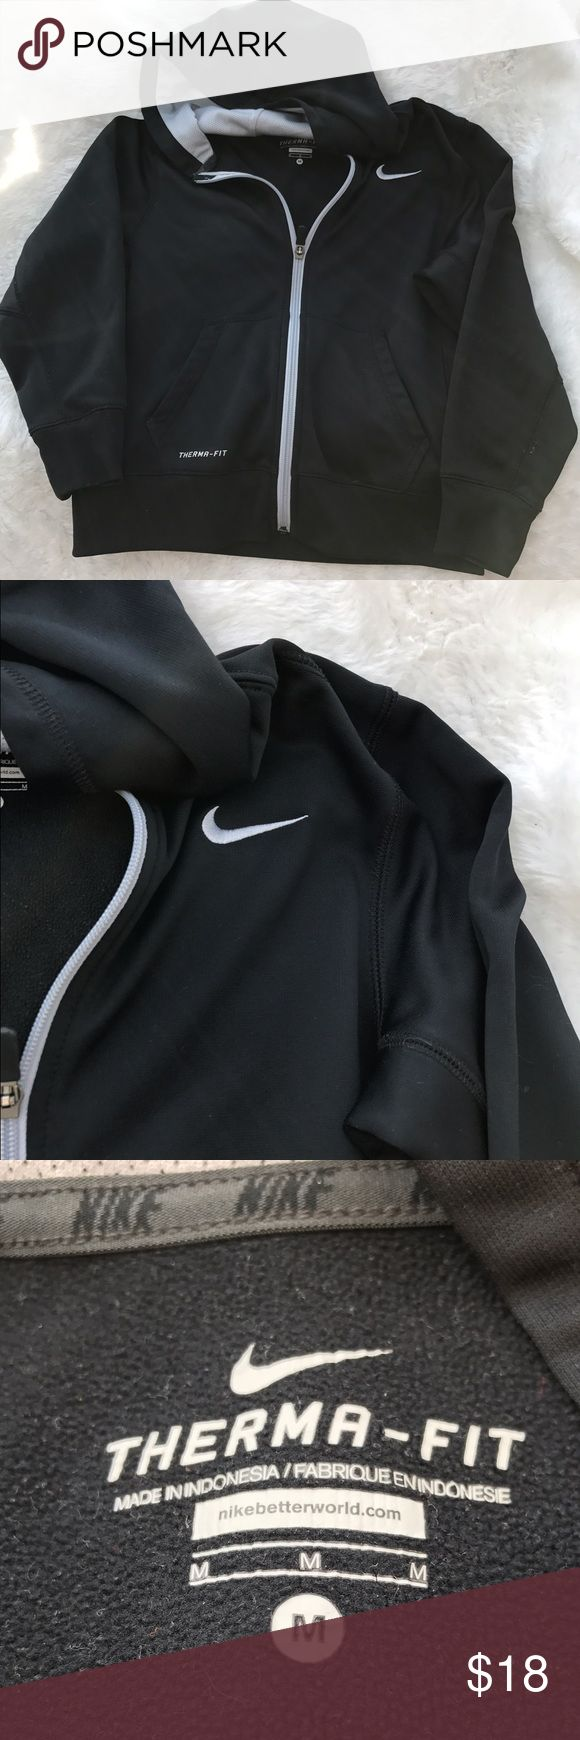 Boys Nike Therma Fit Black Zip Up Hoodie Medium Nike boys ship Up Hoodie sweatshirt. Medium. Lightly worn. Therma fit technology. No noted defects. 🚫No trades ✅Reasonable offers submitted though offer button accepted. 🚭Smoke free home💌Laundered before shipped Nike Shirts & Tops Sweatshirts & Hoodies